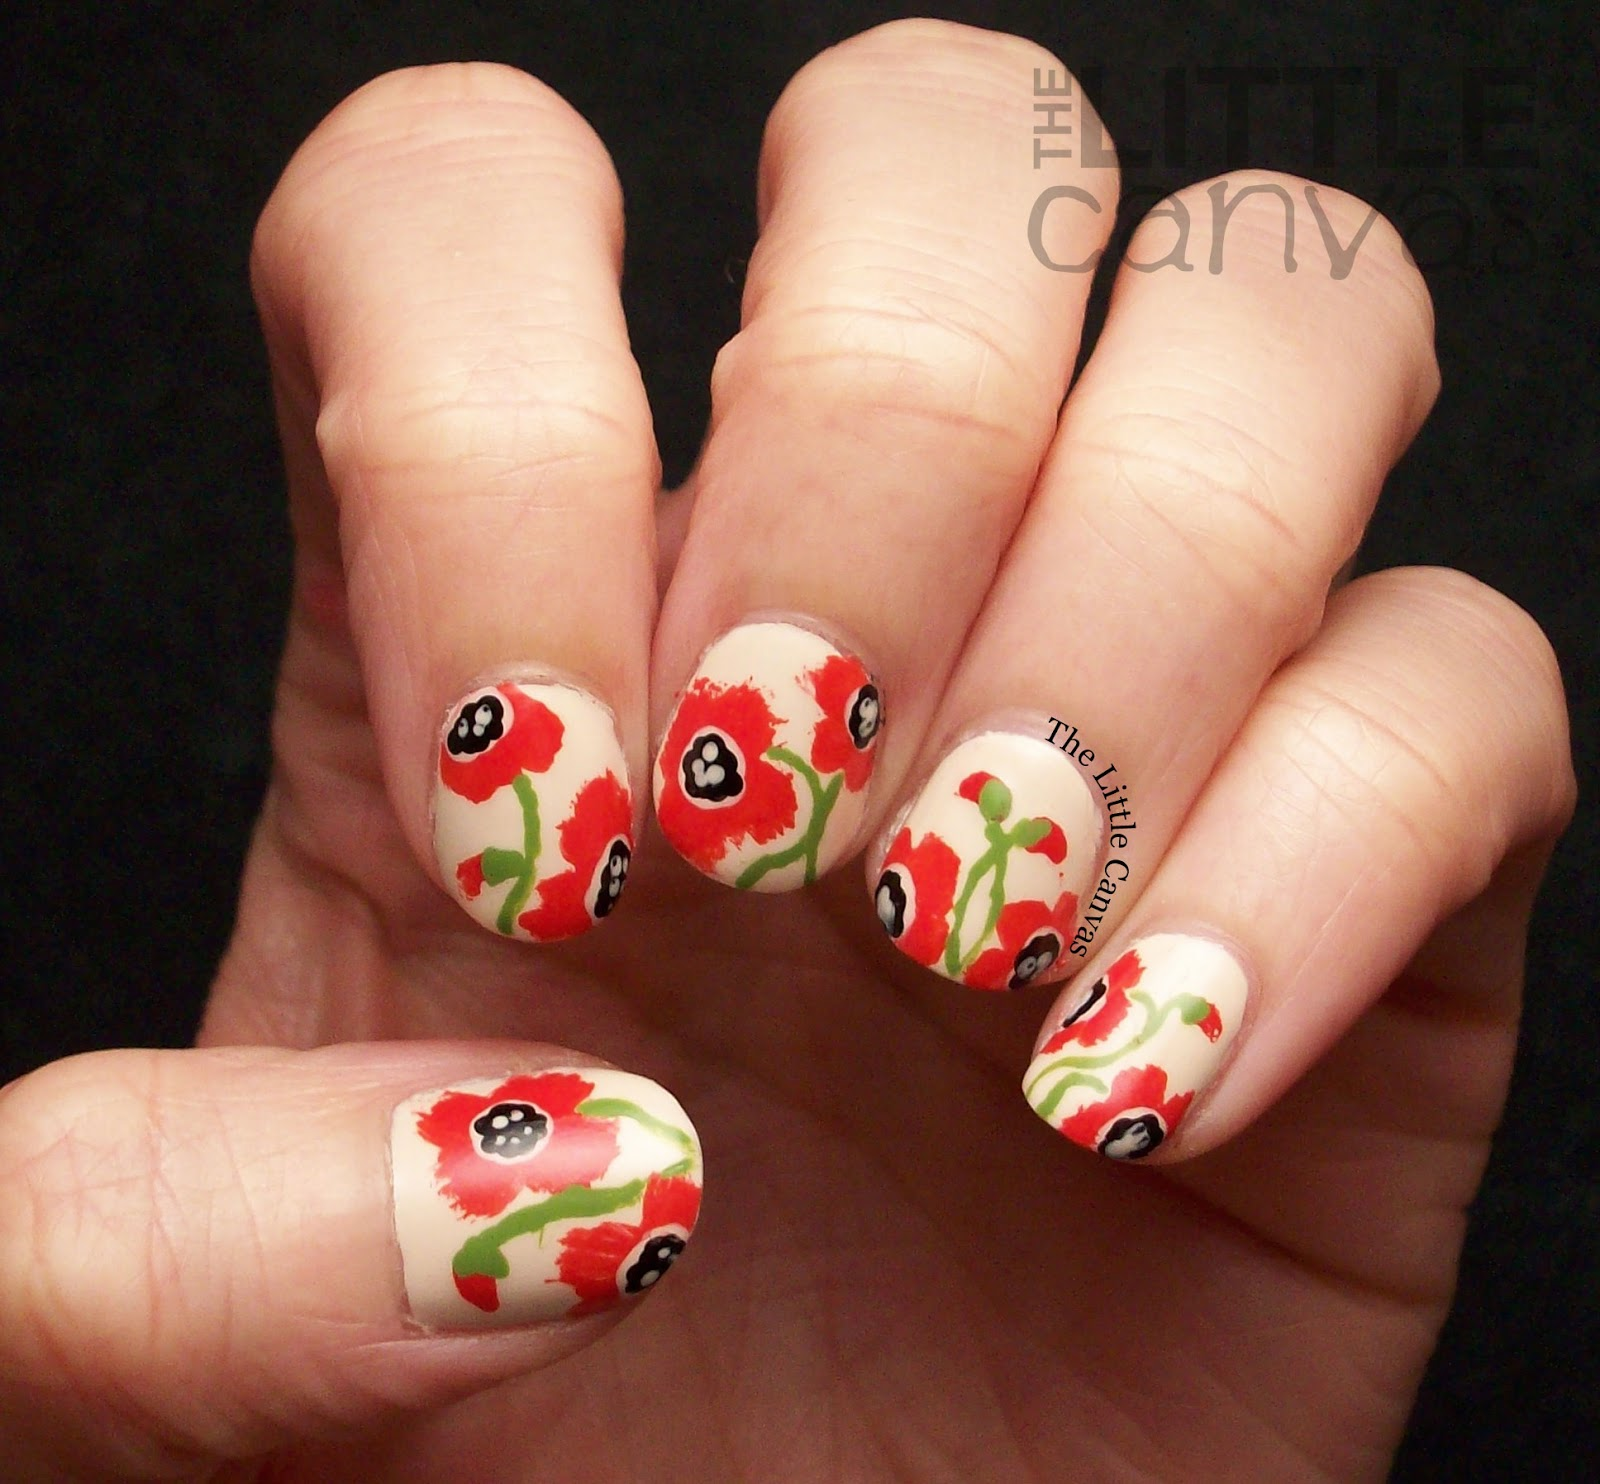 Poppy Nail Art For Memorial Day The Little Canvas